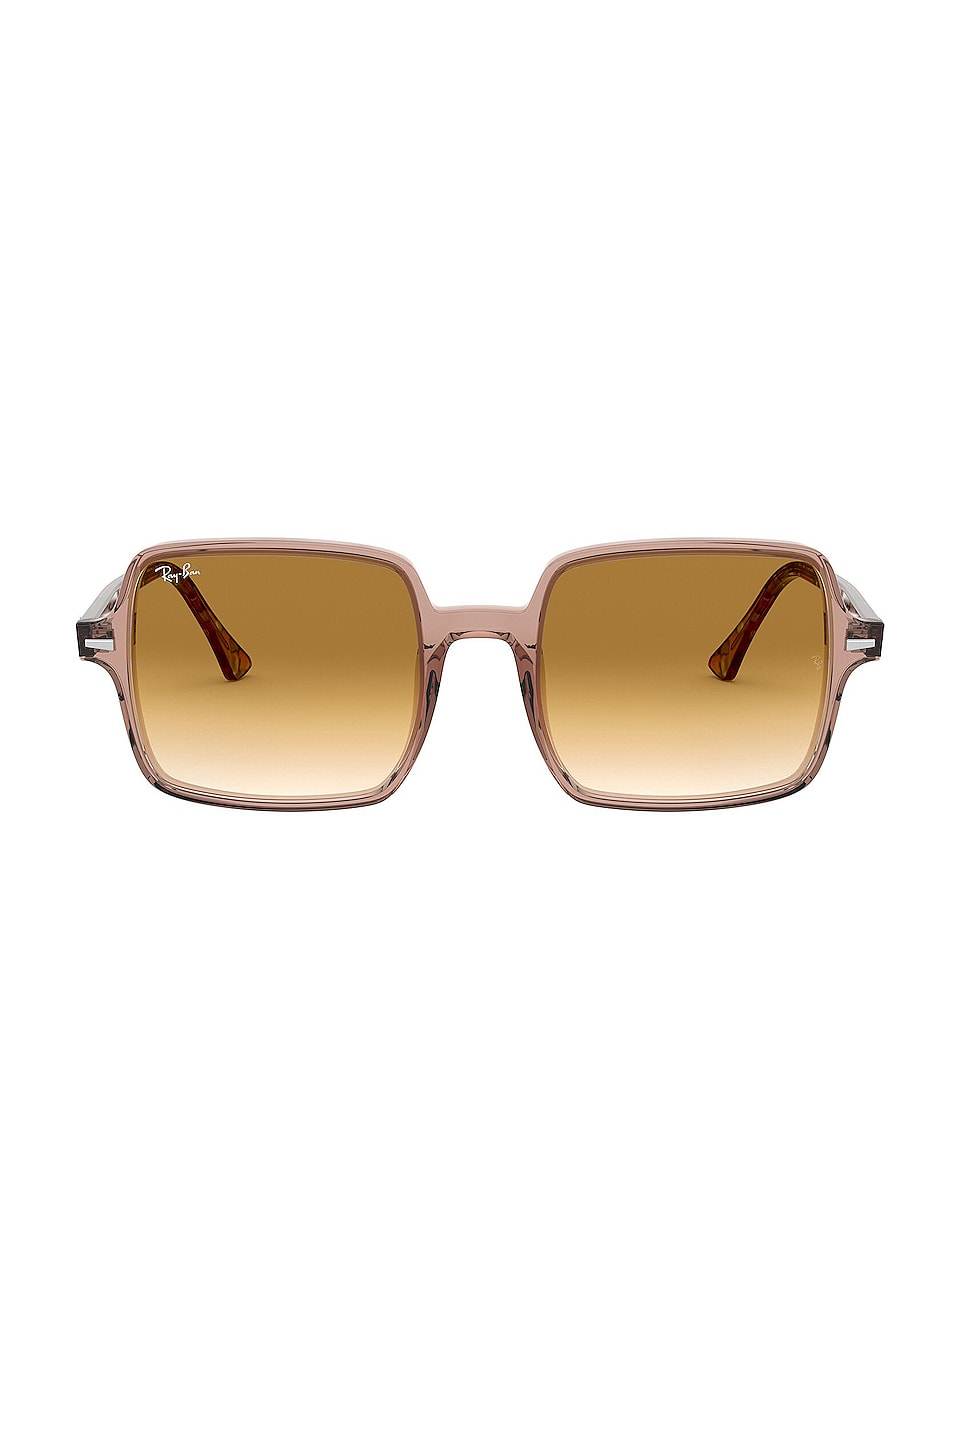 Ray-Ban Acetate Square in Transparent Light Brown & Gradient Brown